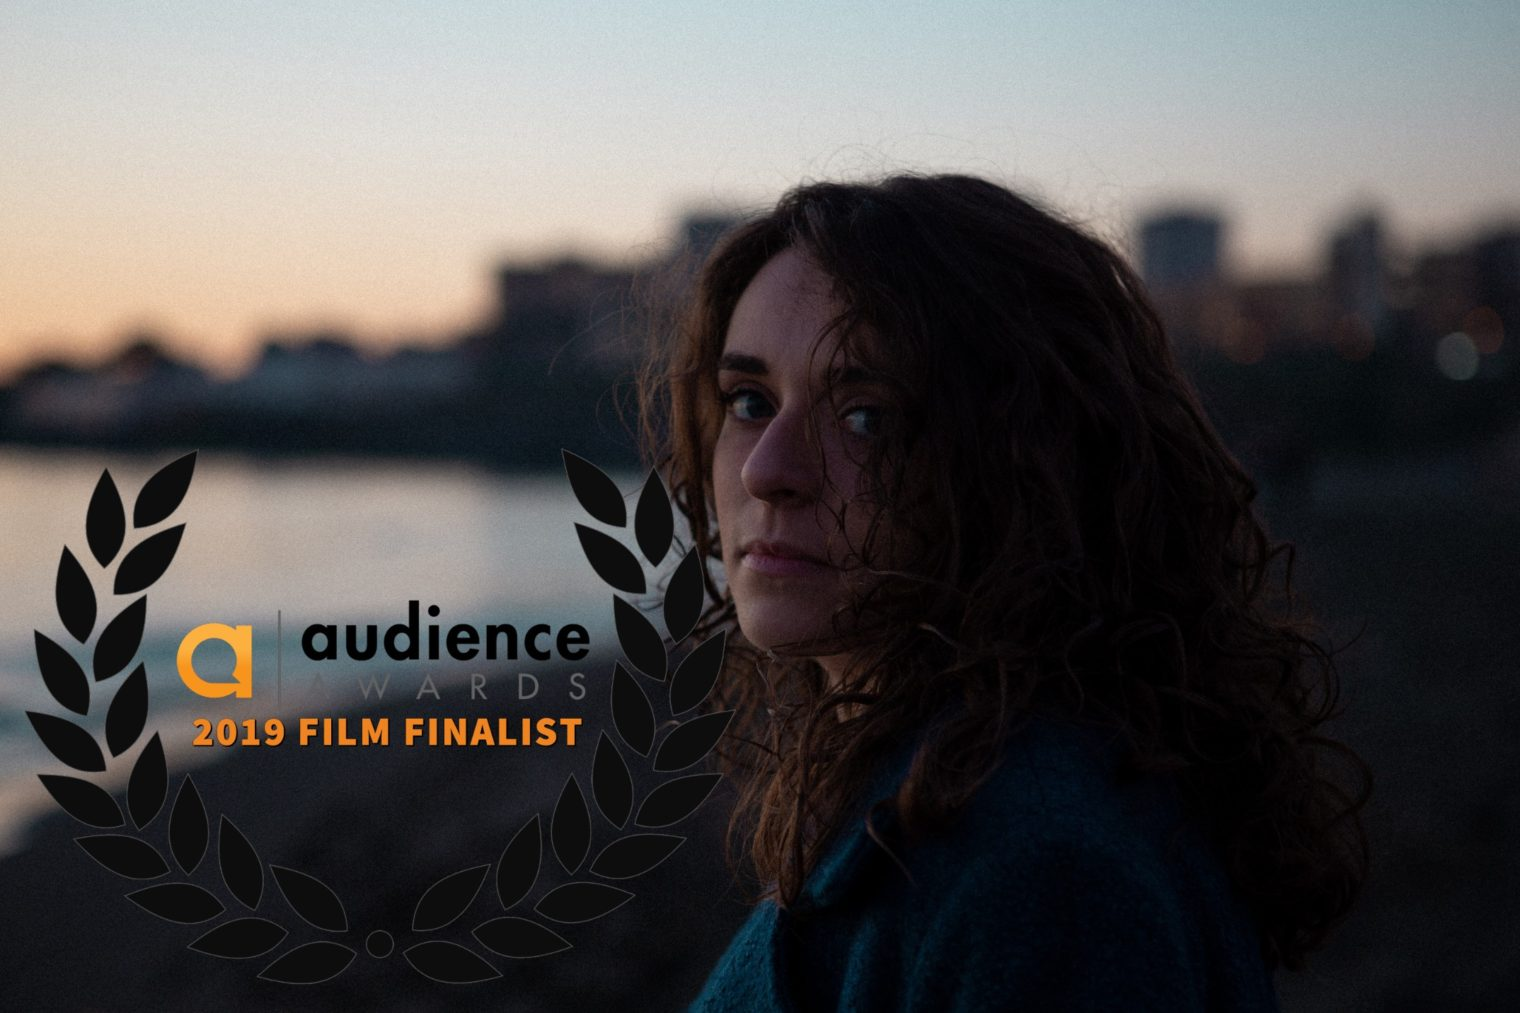 ritratto | birthland | audience awards | contest | video rhamely